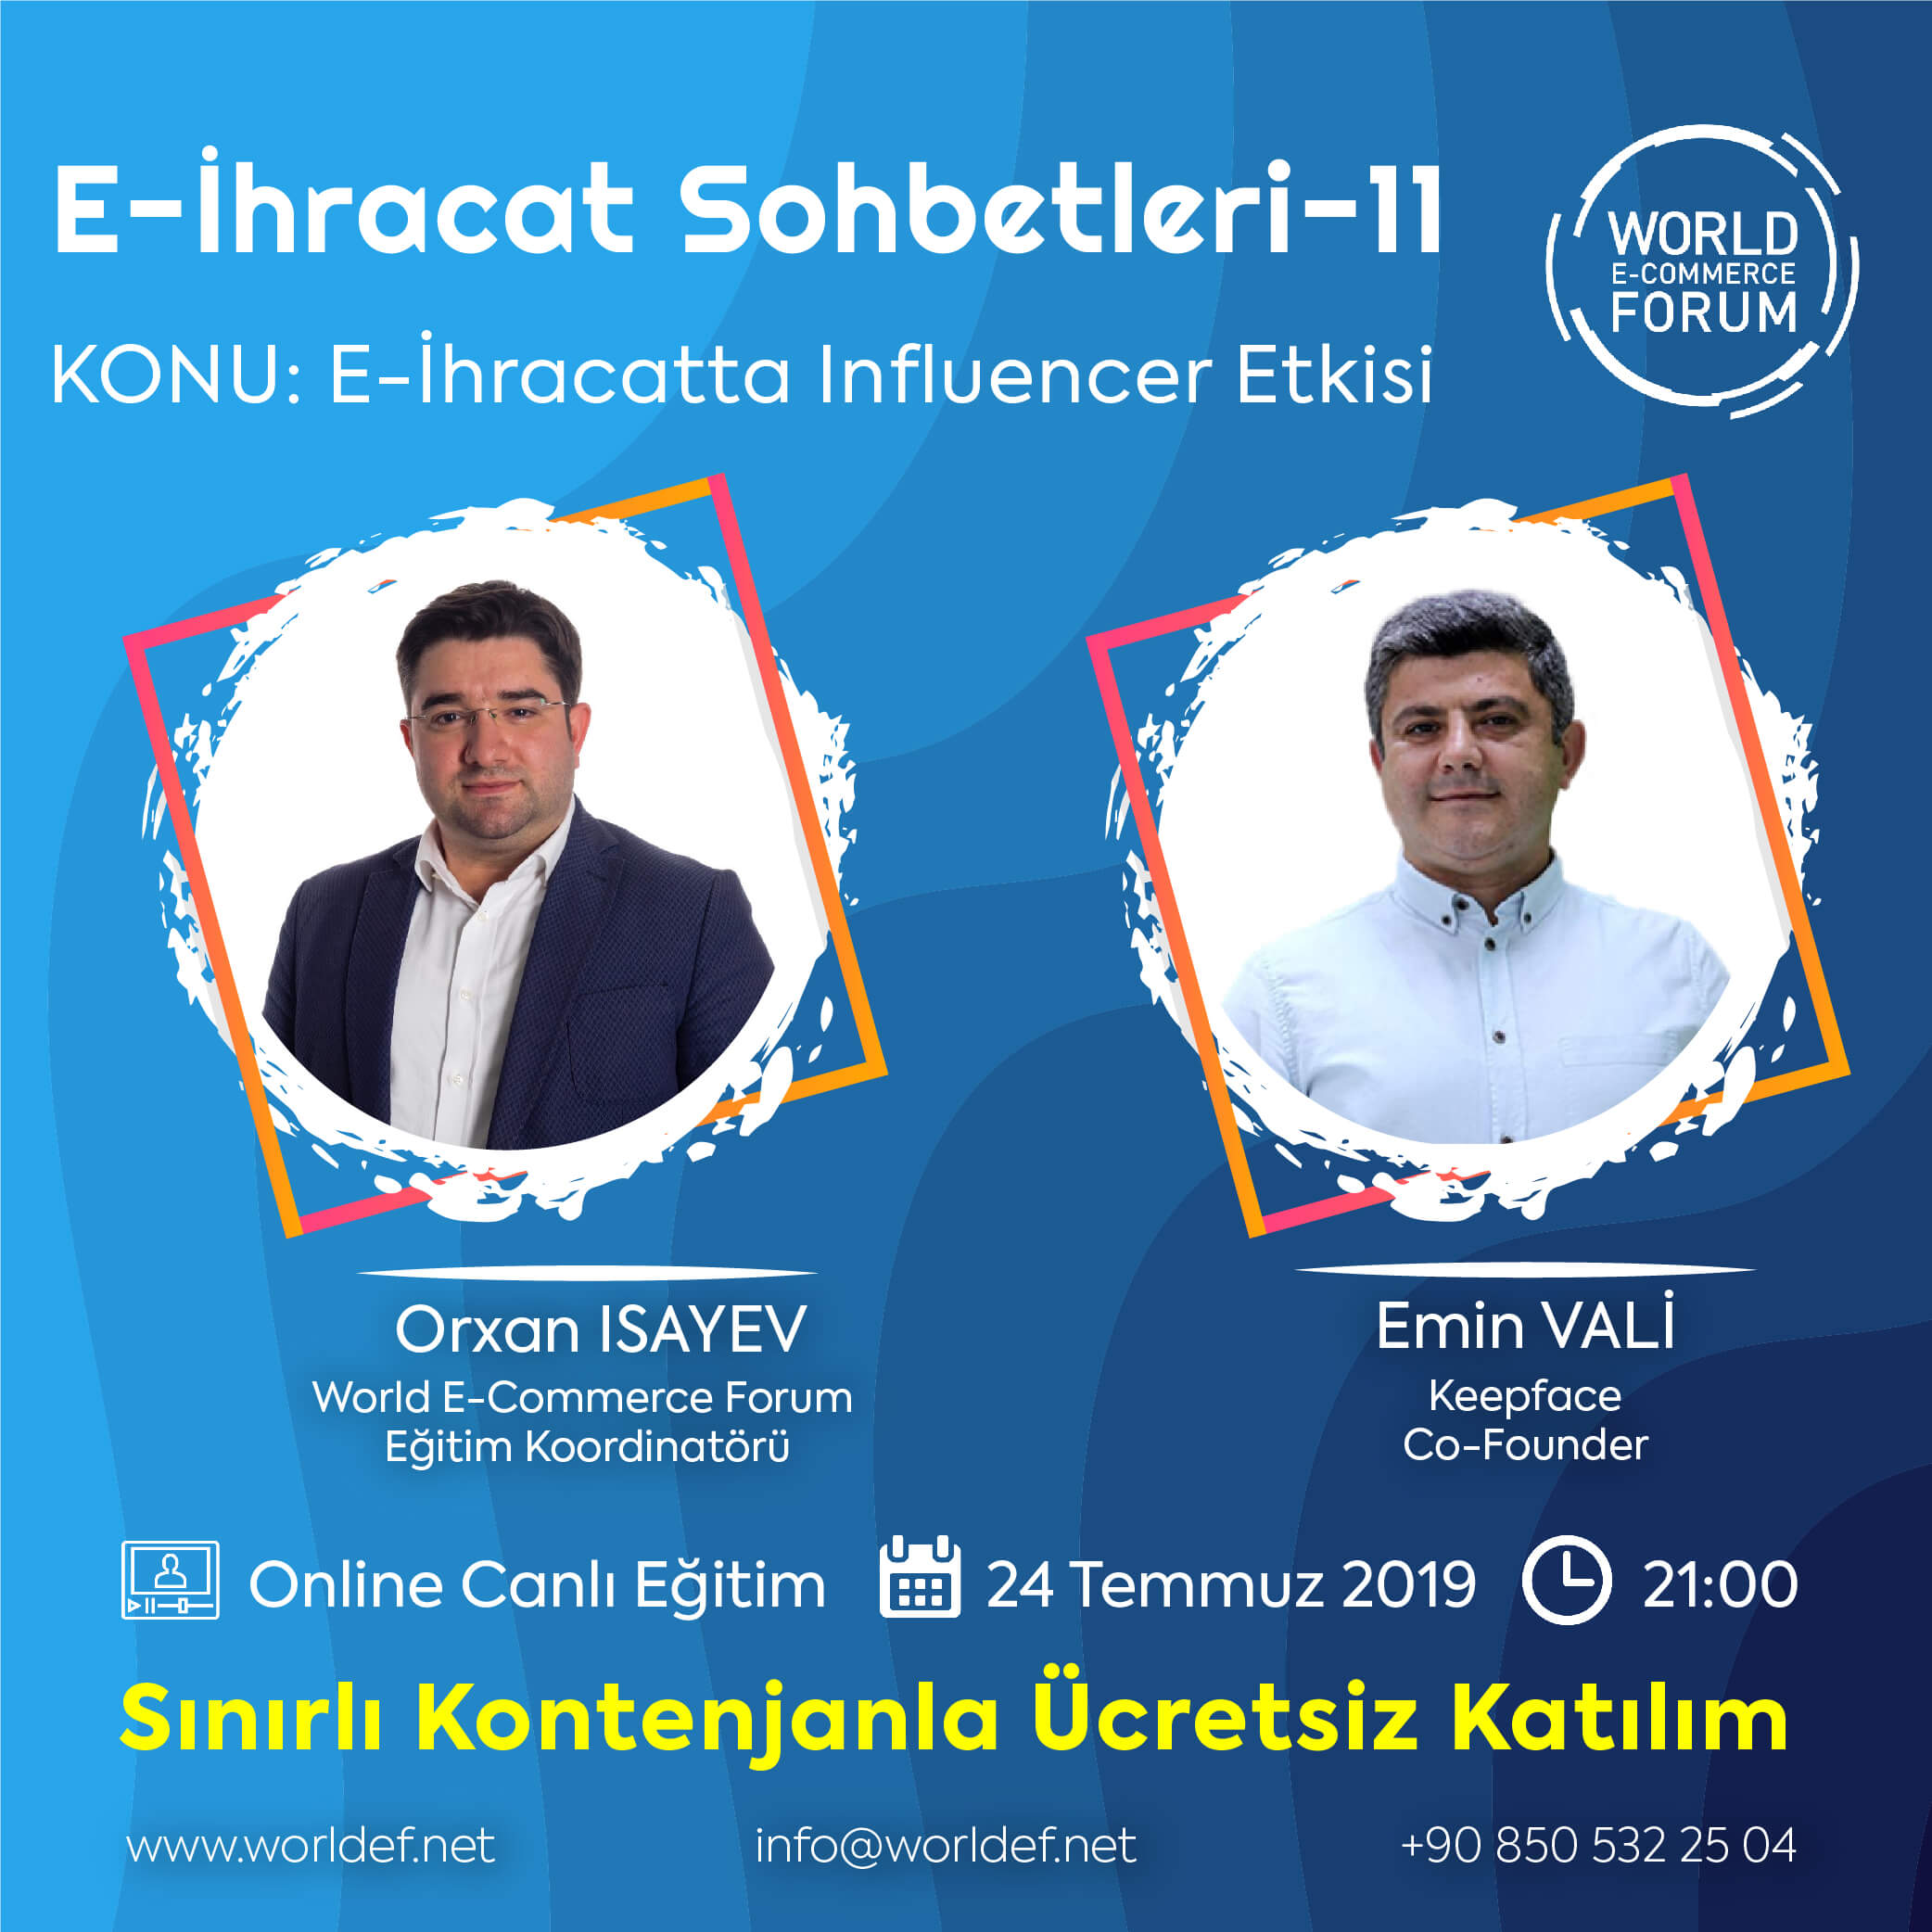 This week, Keepface.com co-founder Emin Valiyev will be the guest of the cross-border e-commerce webinar program. Valiyev will share his knowledge and experience in influencer marketing with us!